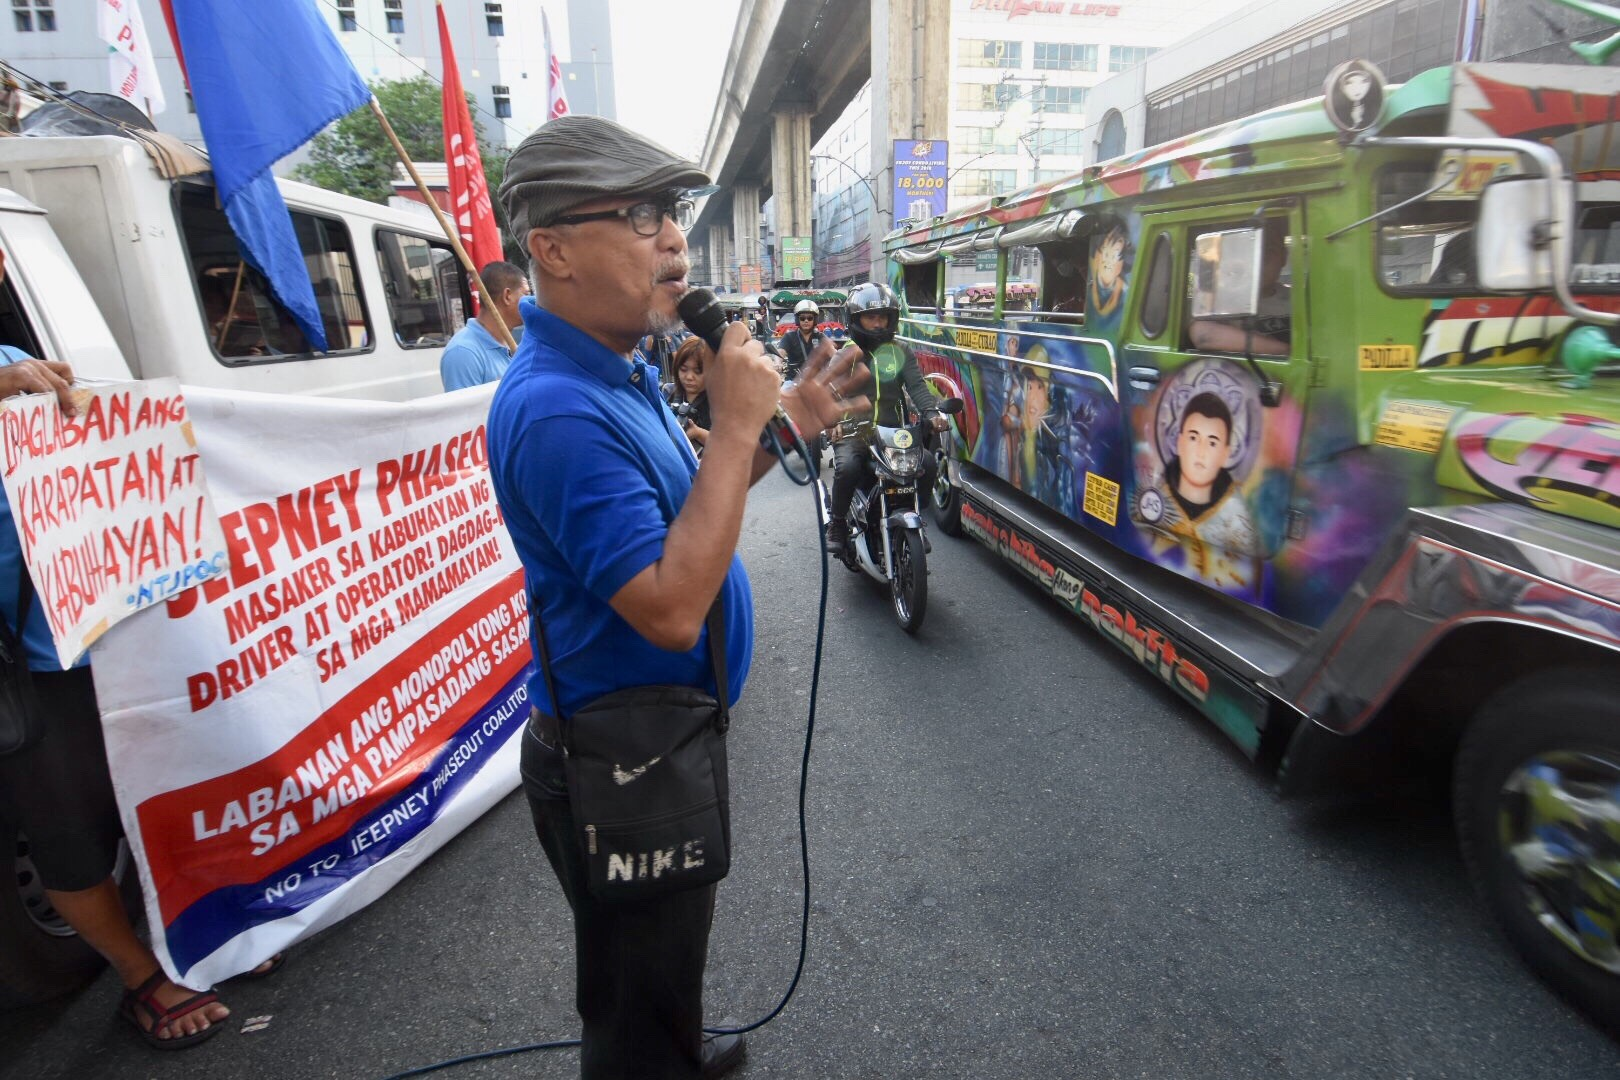 Piston's president George San Mateo calls for support and understanding from the public. Photo by Angie de Silva/Rappler